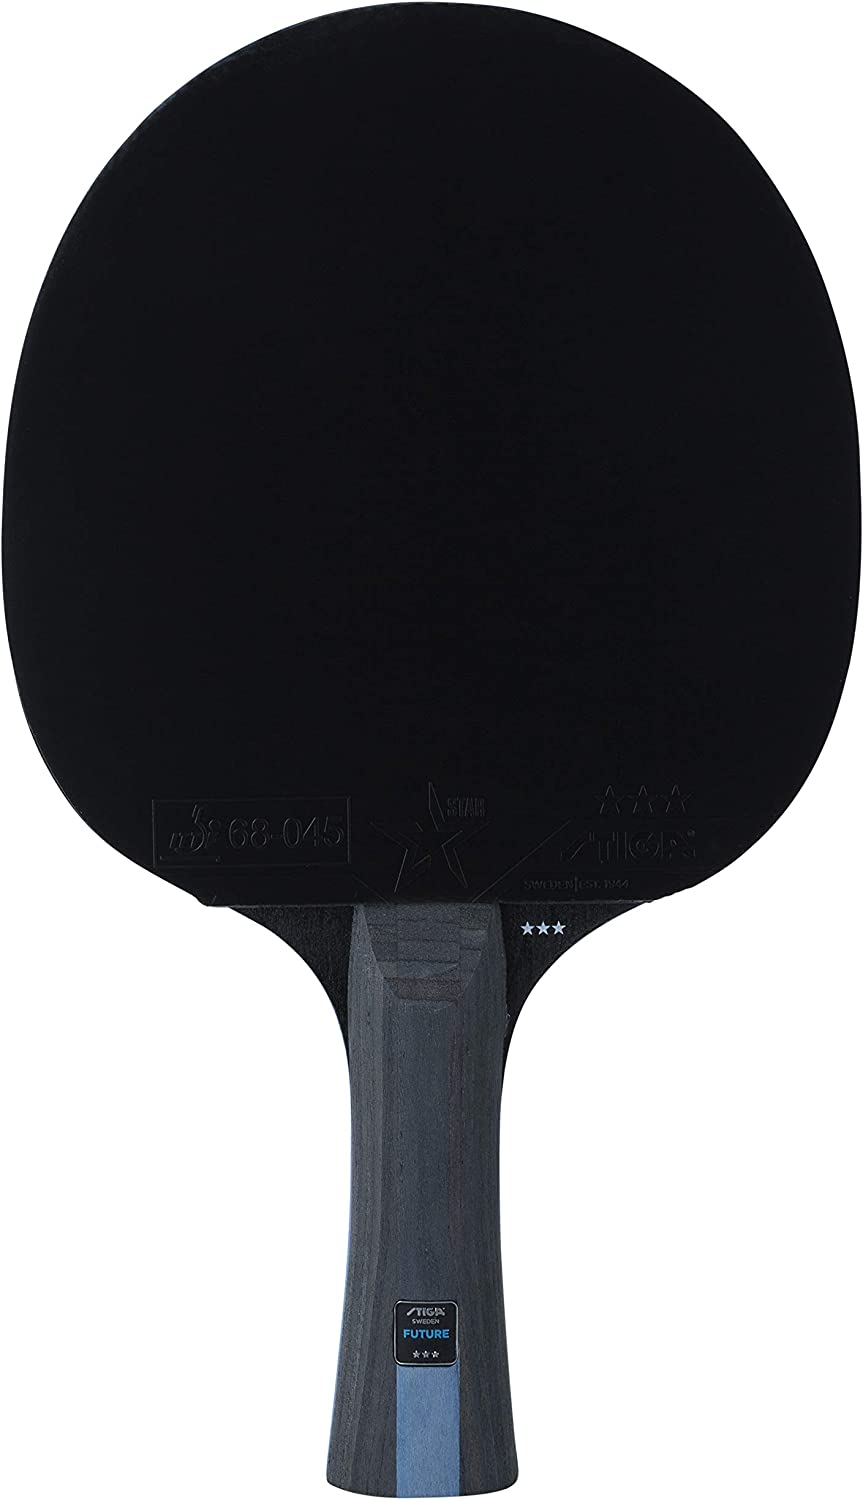 STIGA 3-Star Future Palas de Ping Pong, Unisex-Adult, Black/Red, One Size